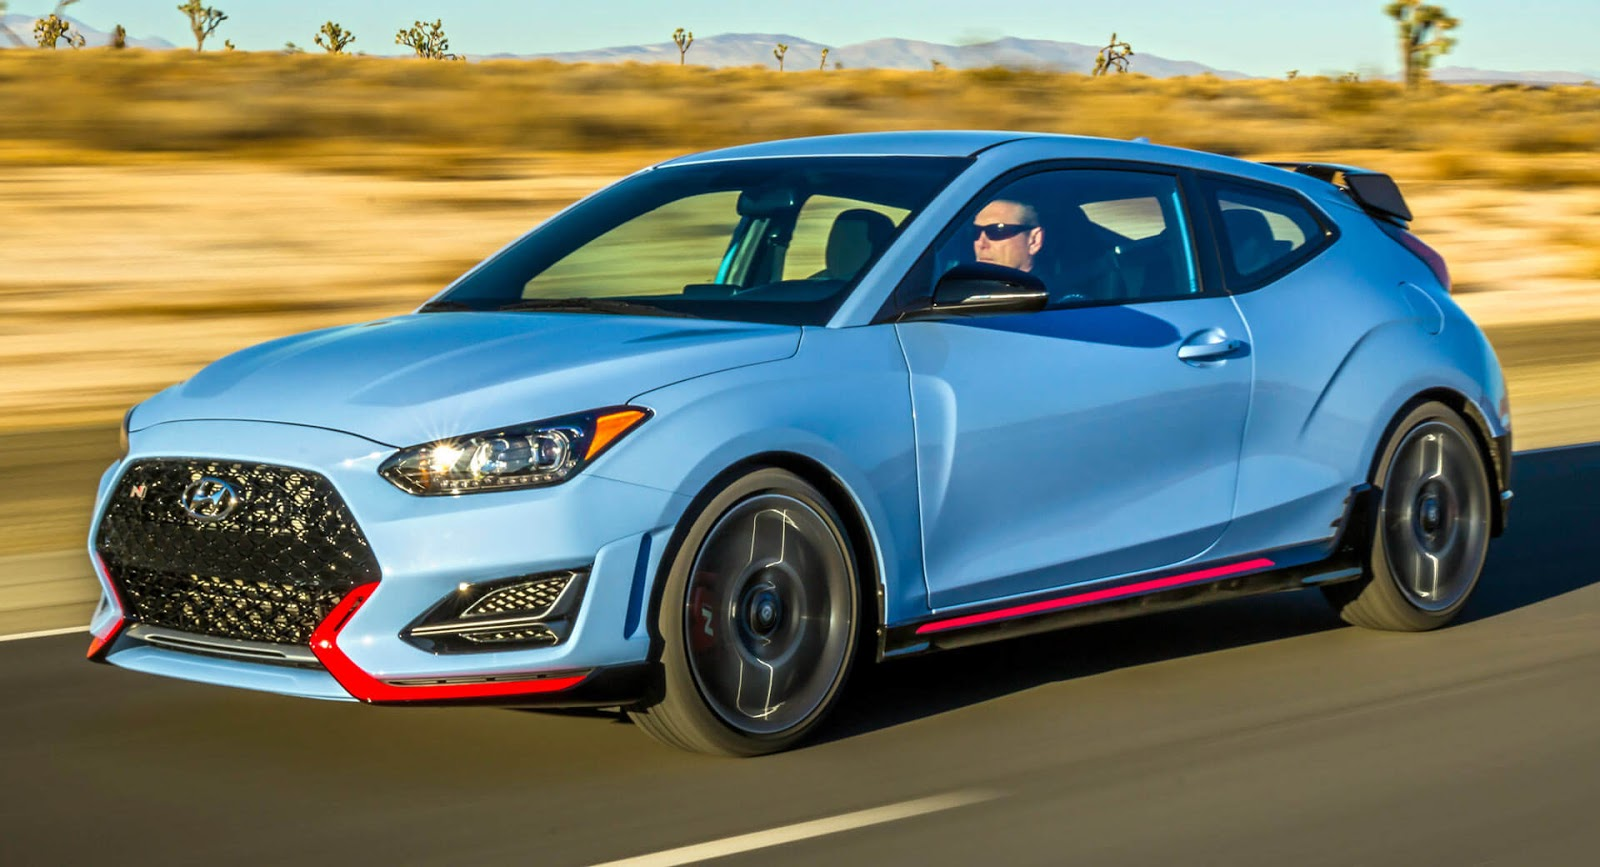 hyundai veloster n revealed with 275 hp 2 liter turbo autoevolution. Black Bedroom Furniture Sets. Home Design Ideas